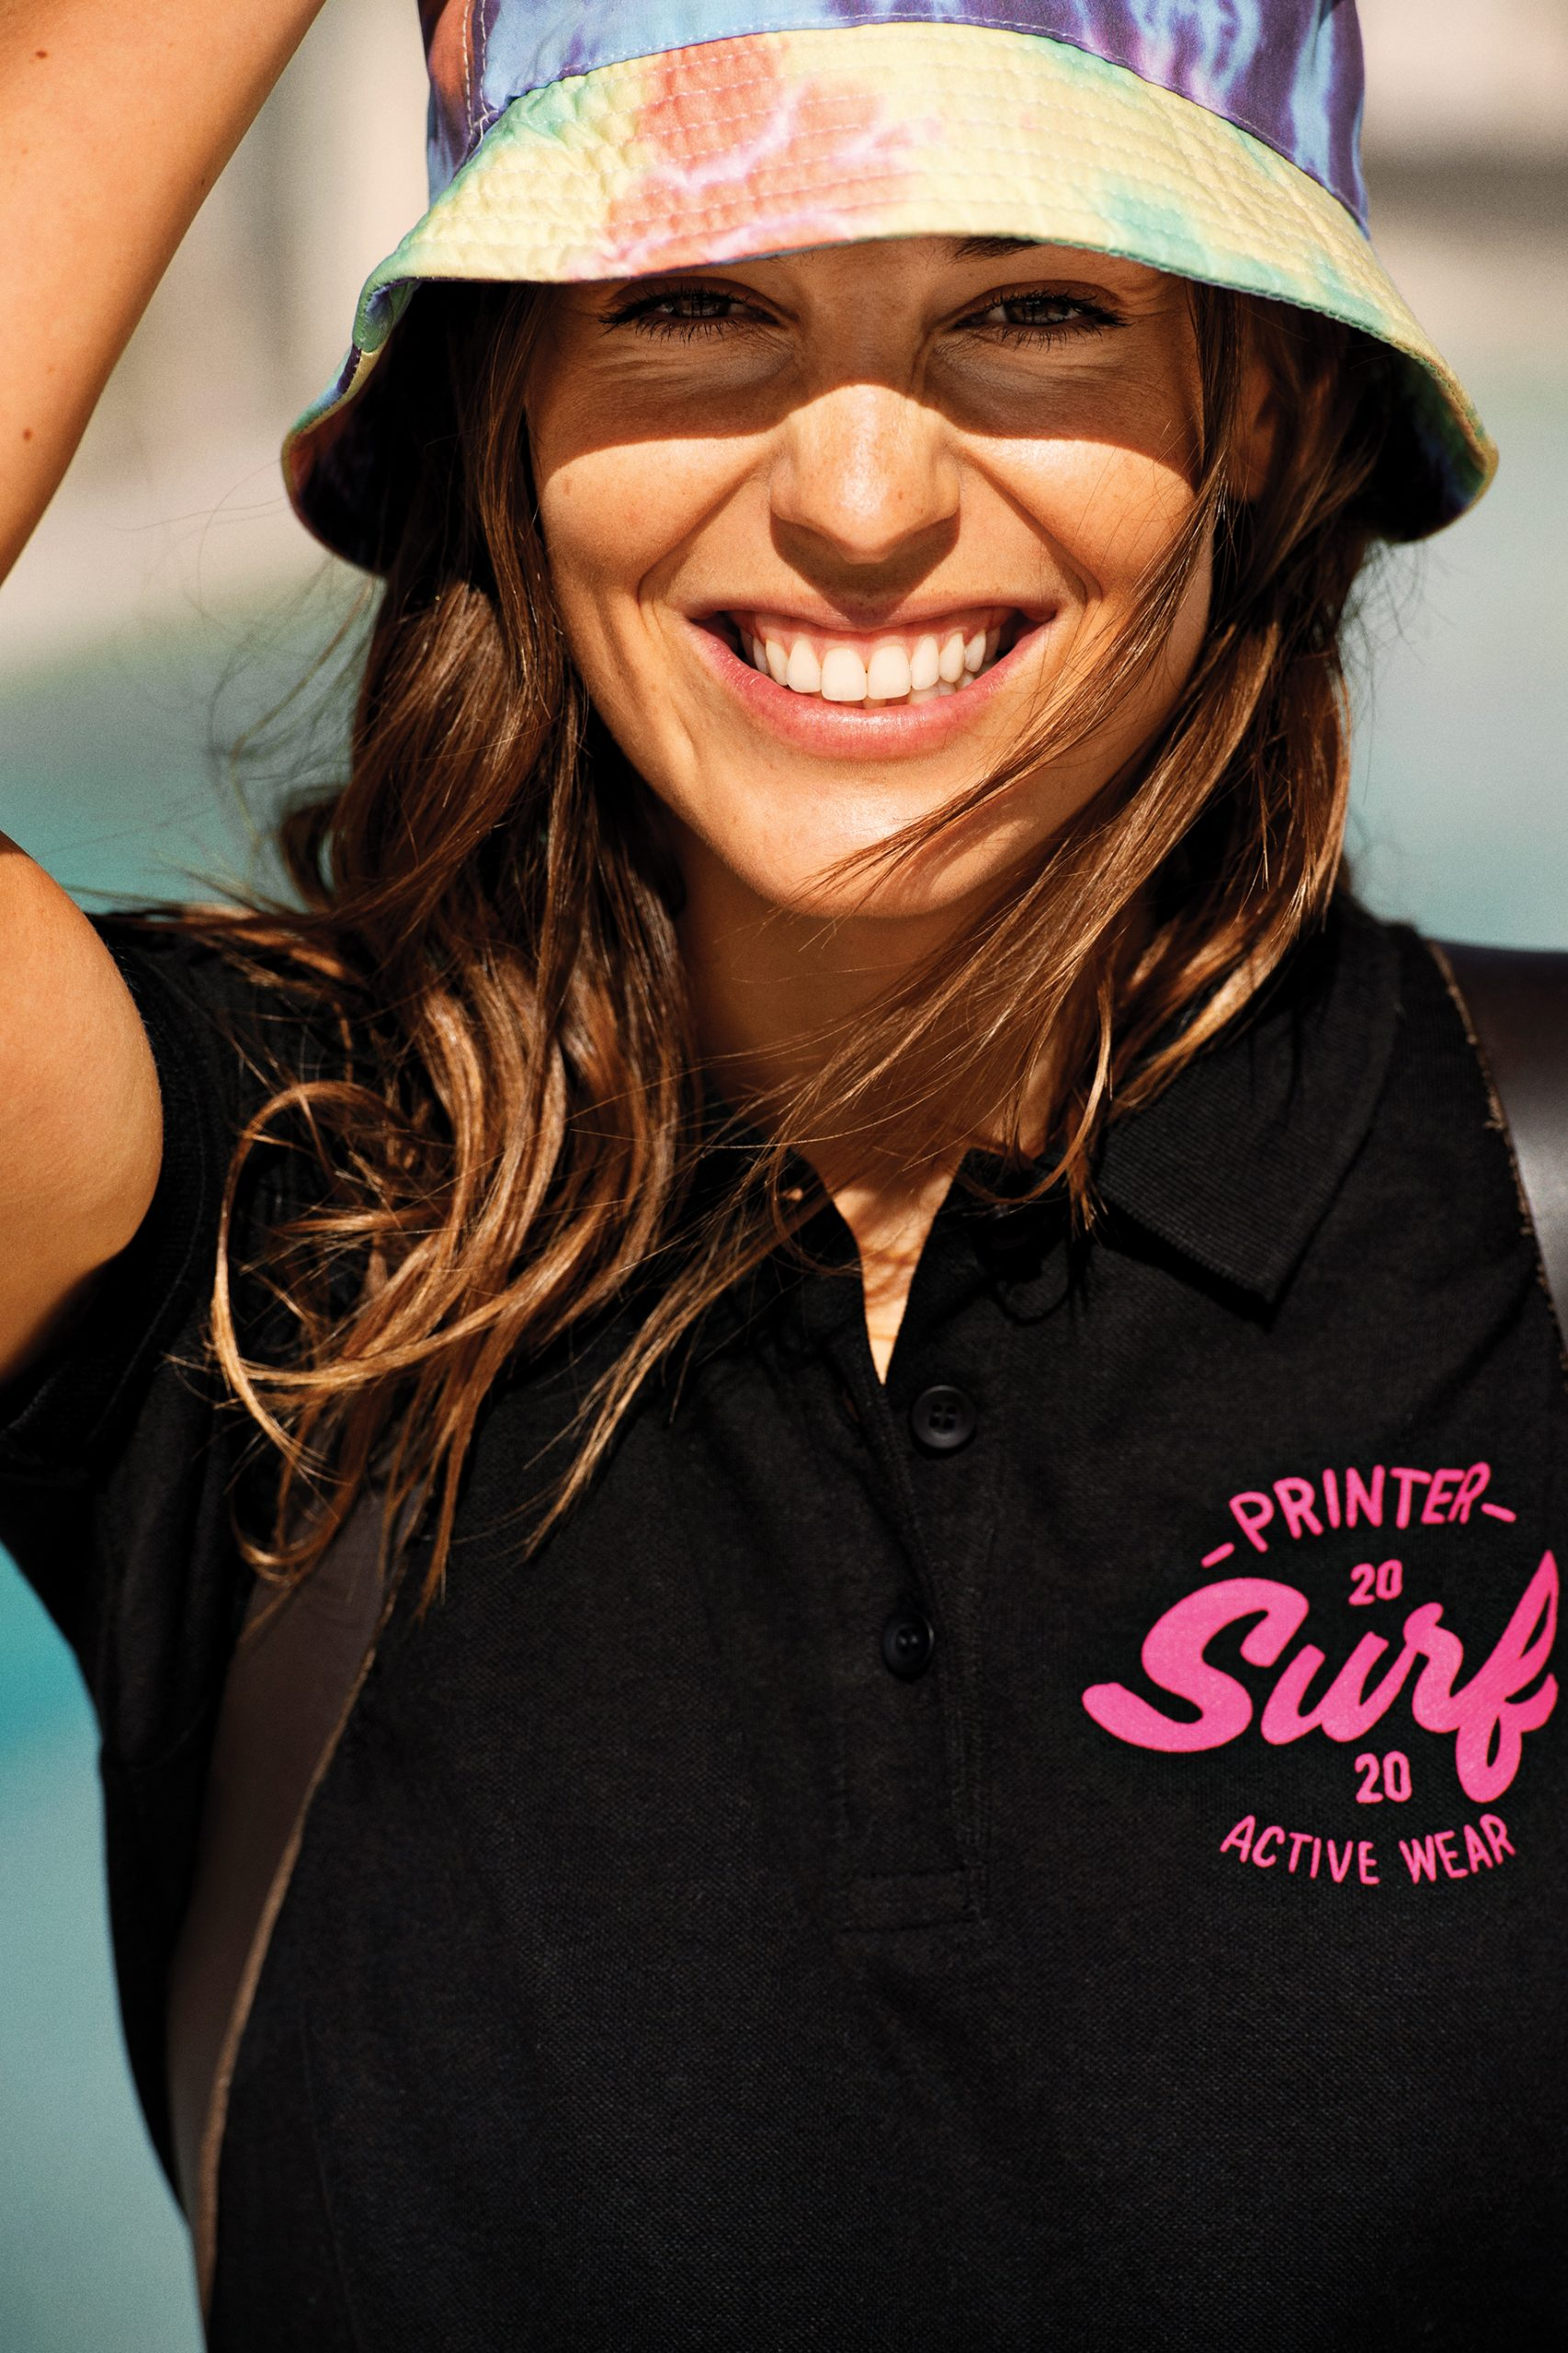 Surf Pro Lady in 900 Black